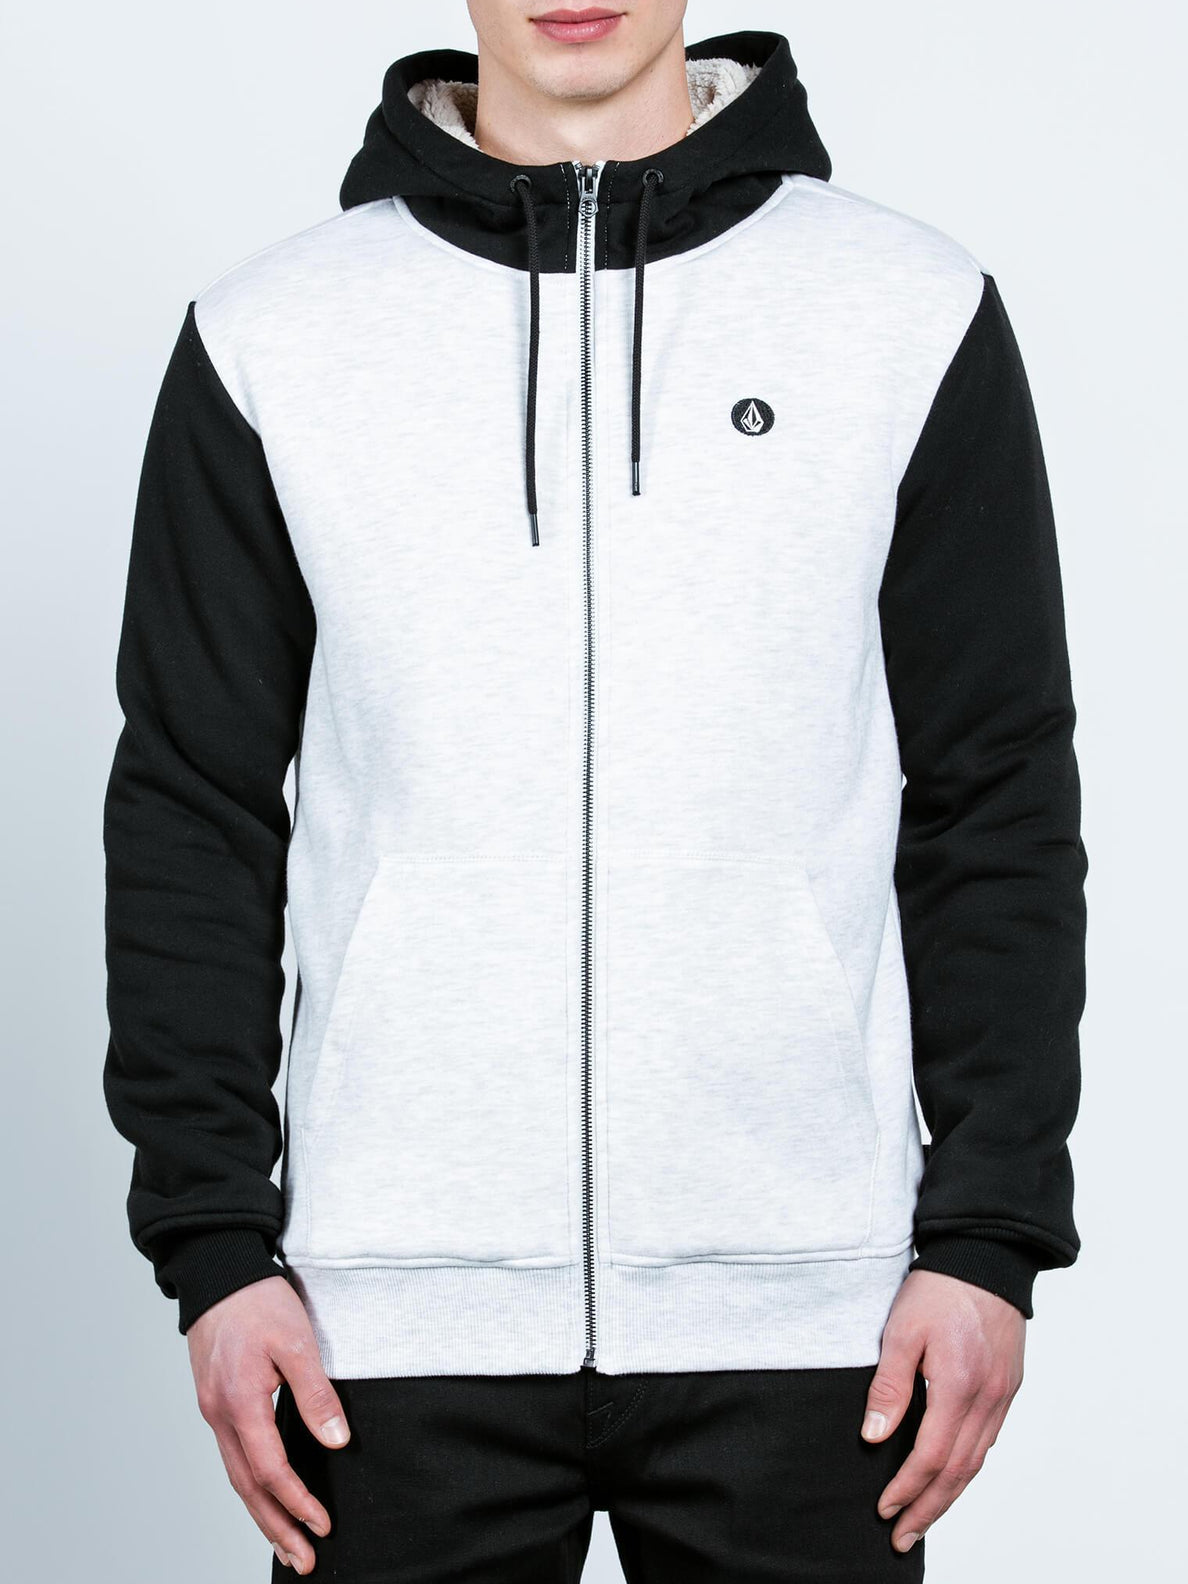 Sweat Sngl Stn Lined Zip - Mist